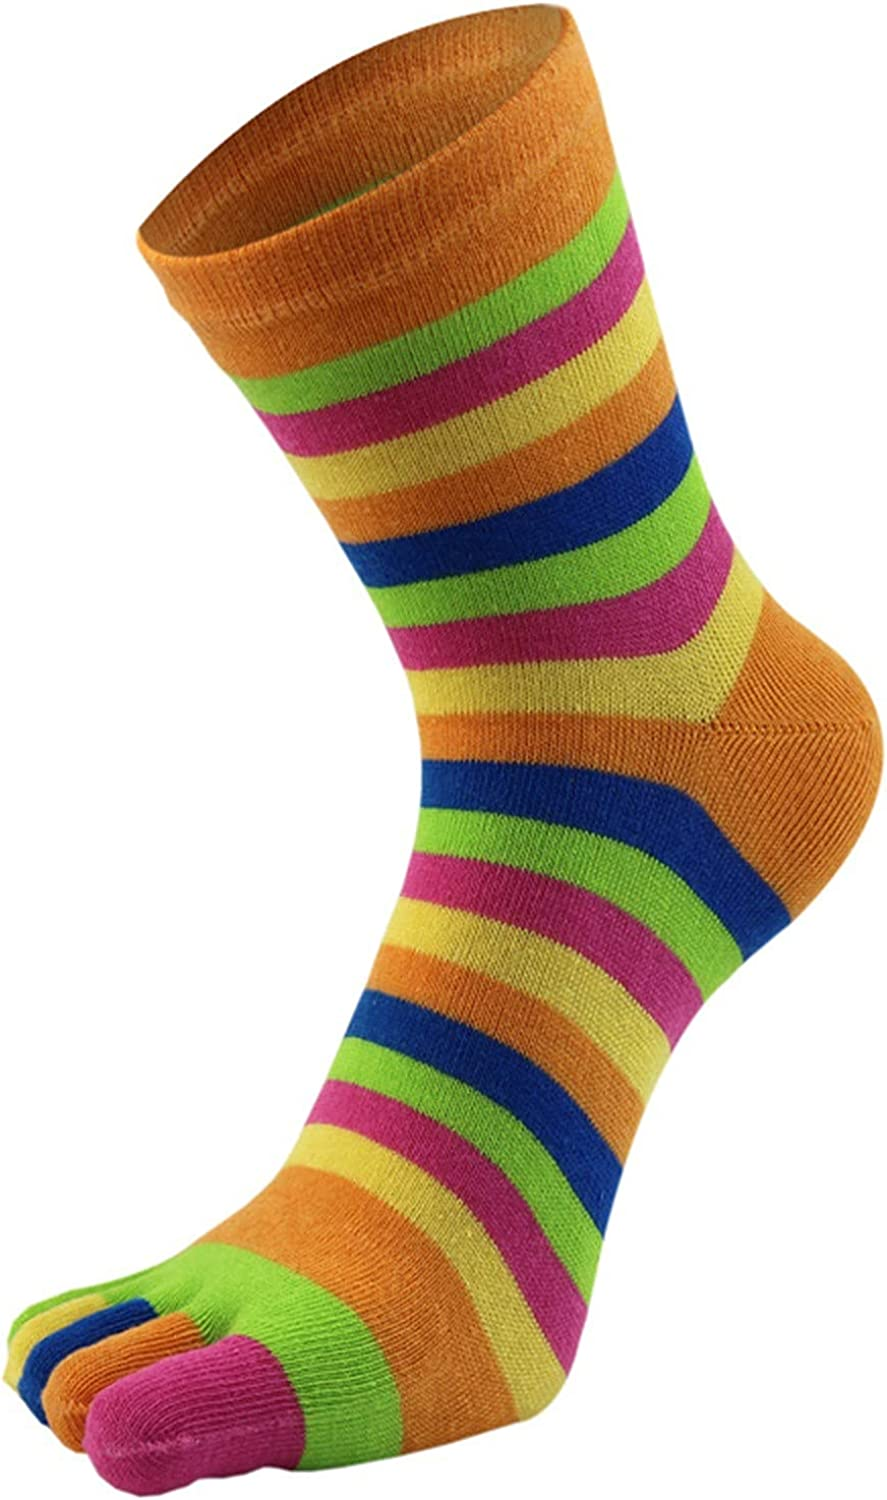 GXLONG Five Toe Socks Cotton Rainbo Challenge the lowest price of Japan ☆ Separated Today's only Colorful